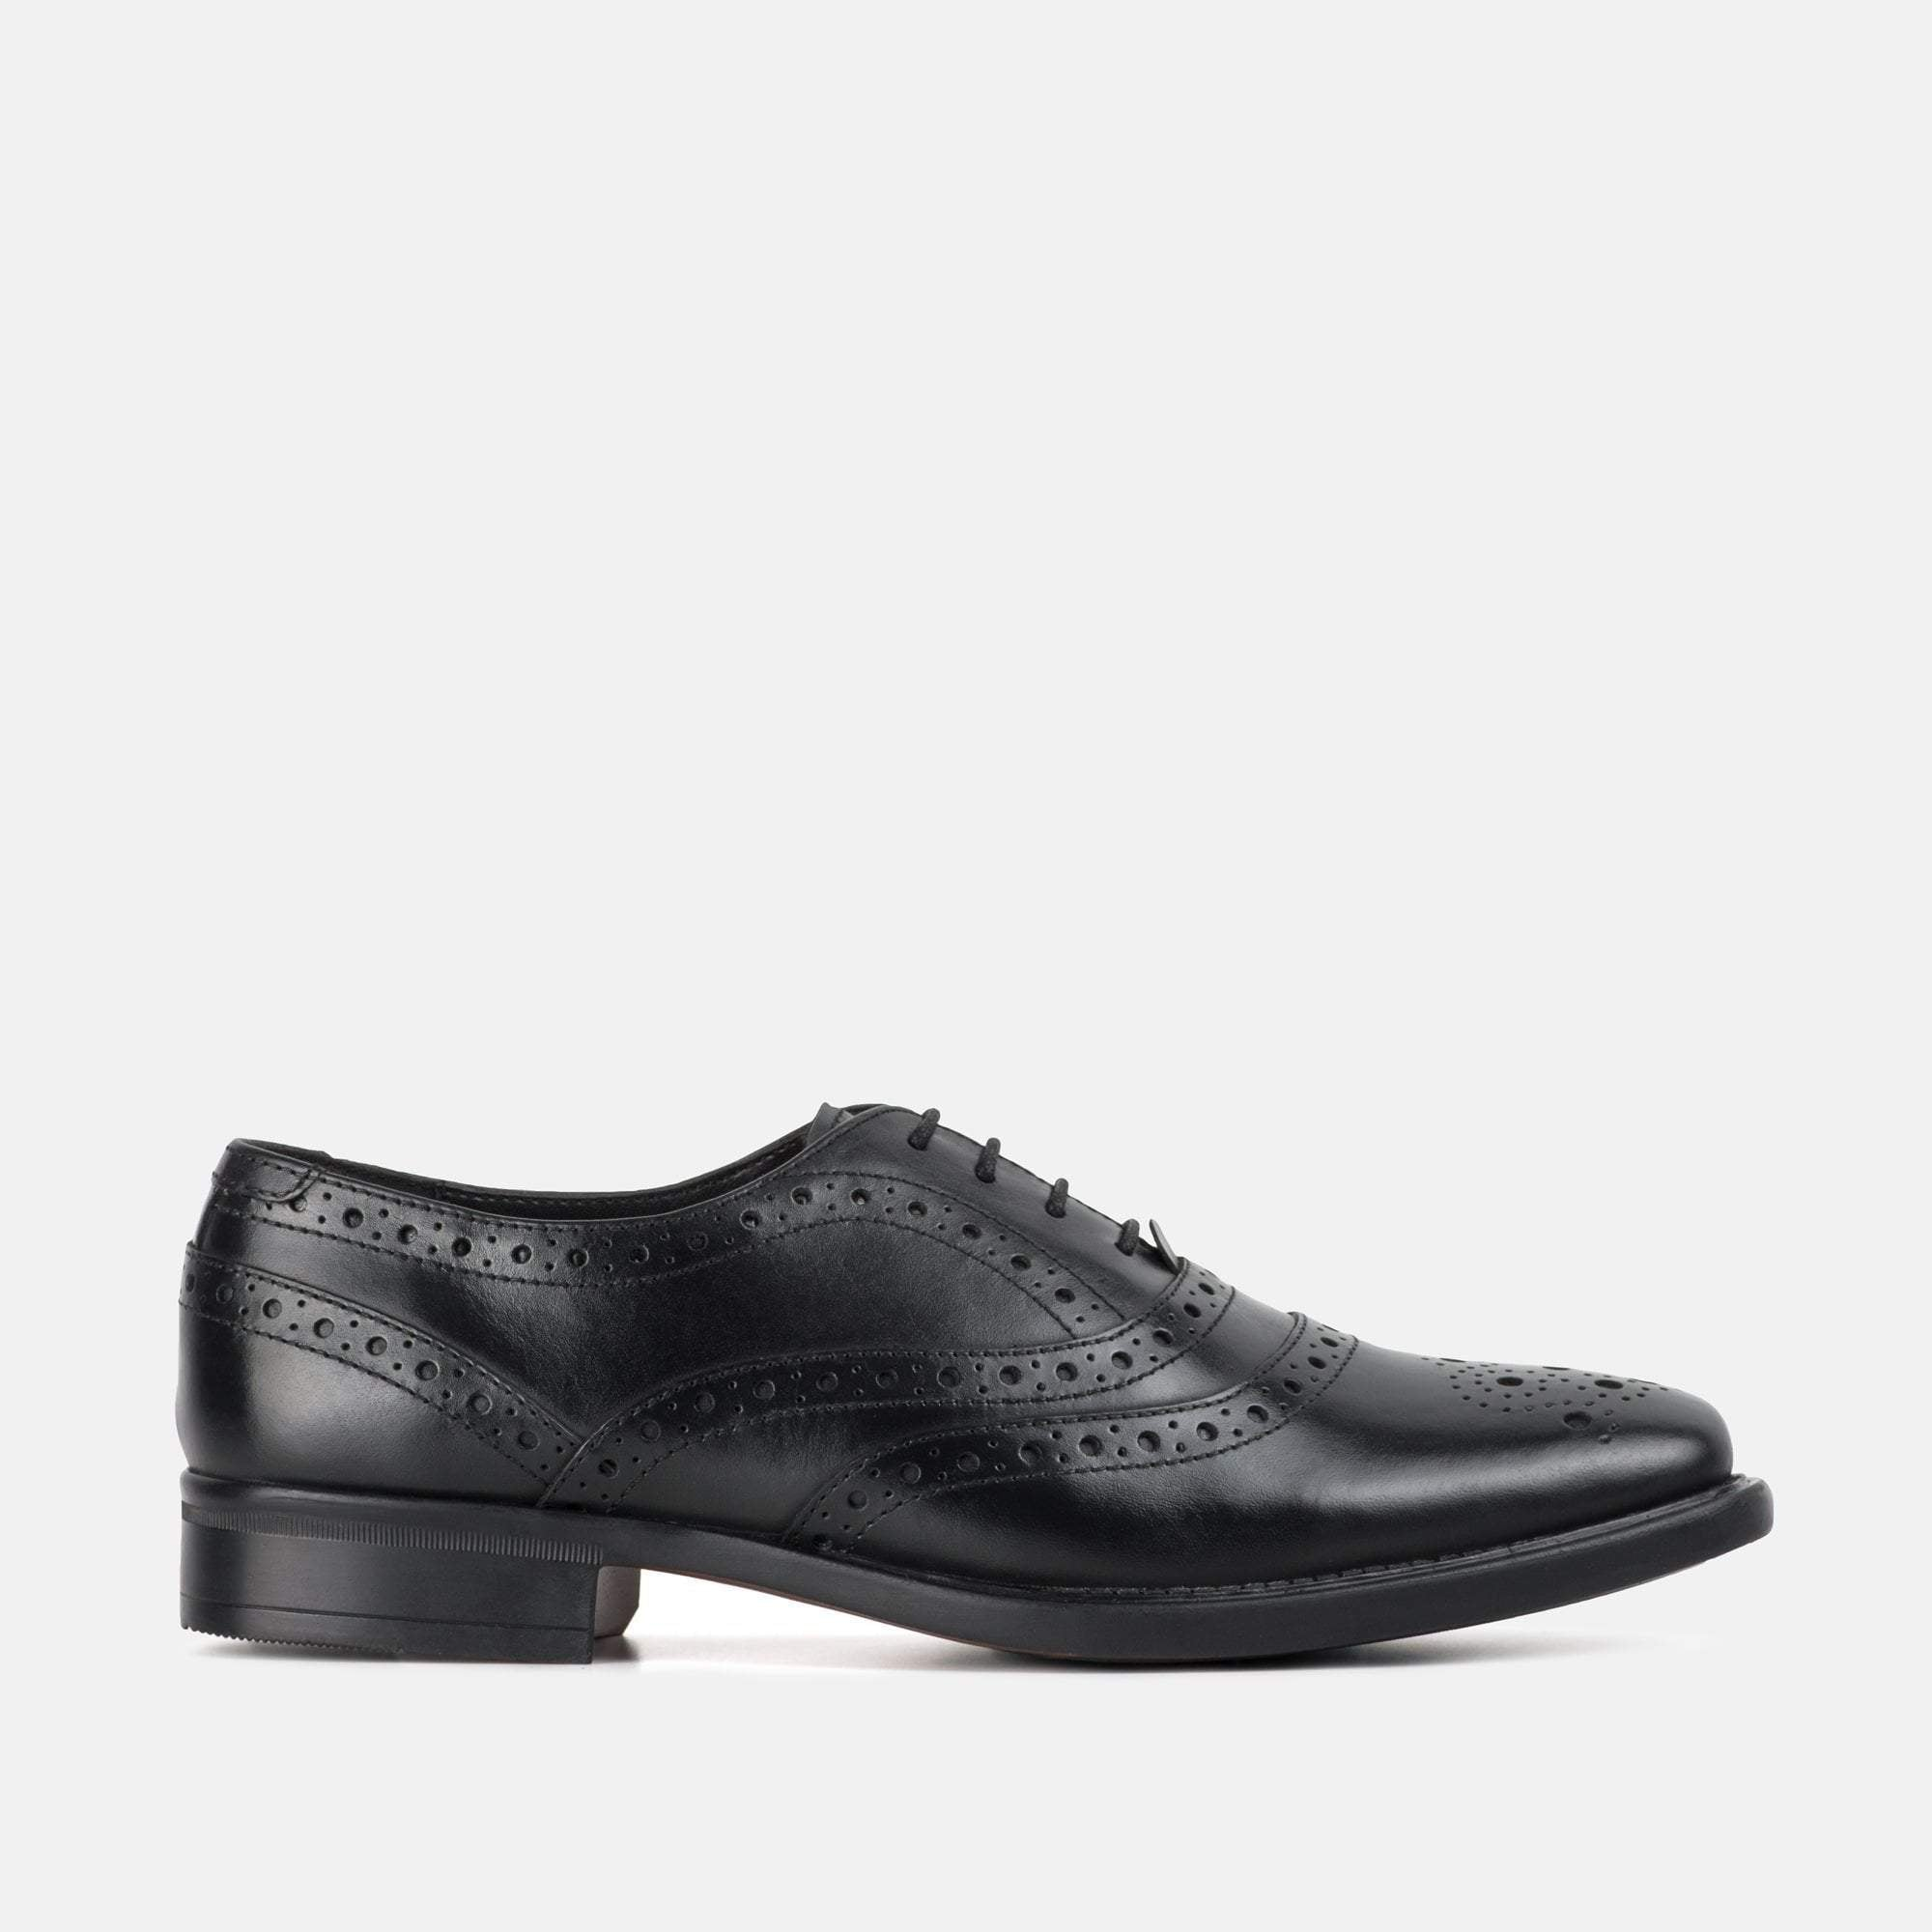 Redfoot Footwear UK 6 / EURO 39 / US 7 / Black / Leather WILLIAM BLACK